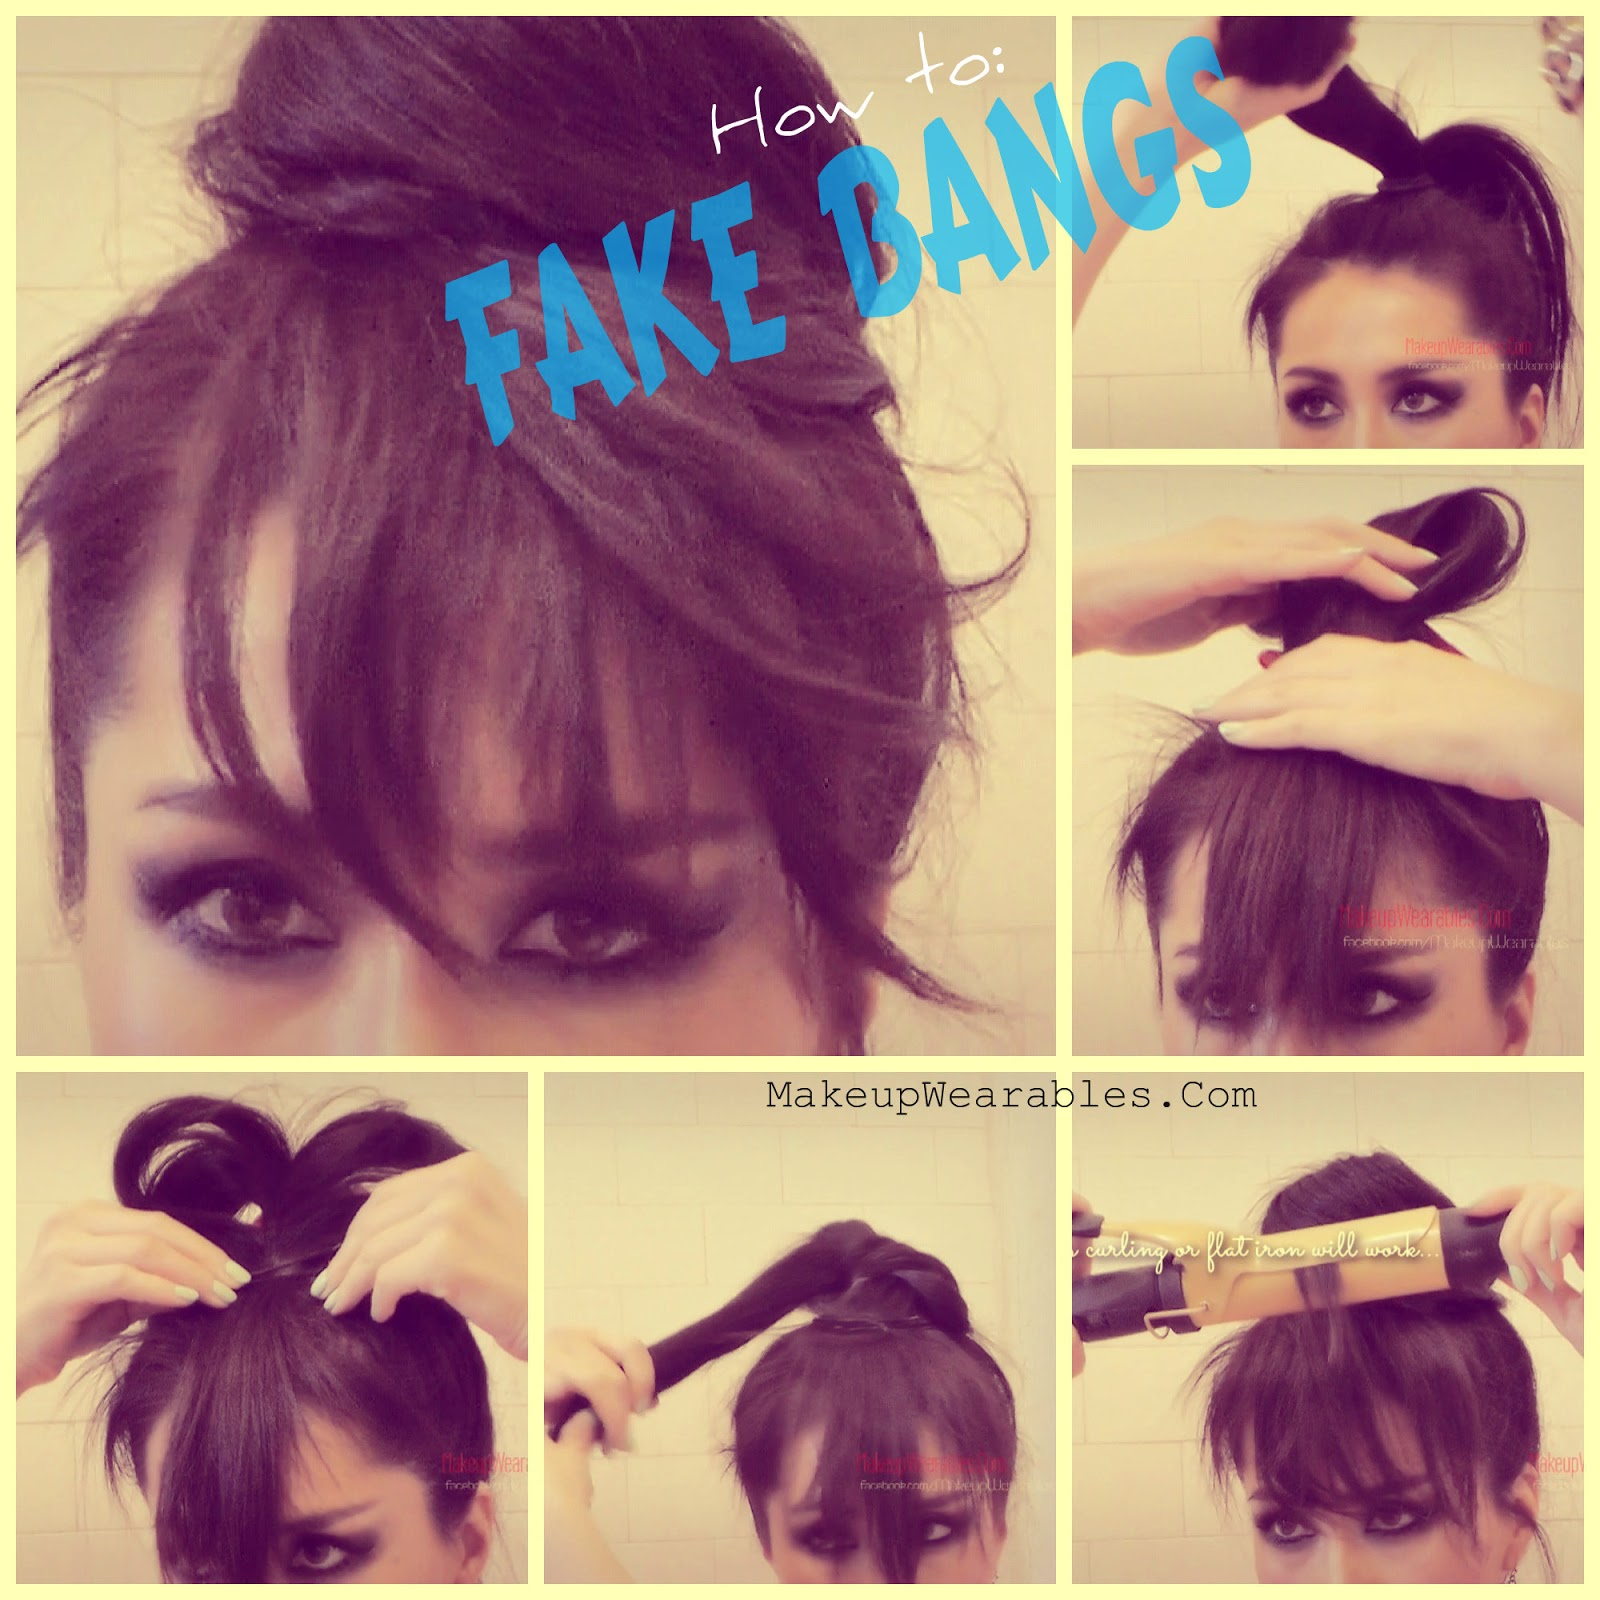 Fabulous How To Fake Bangs Cute Easy Bun Hairstyles Hair Tutorial Video Short Hairstyles Gunalazisus